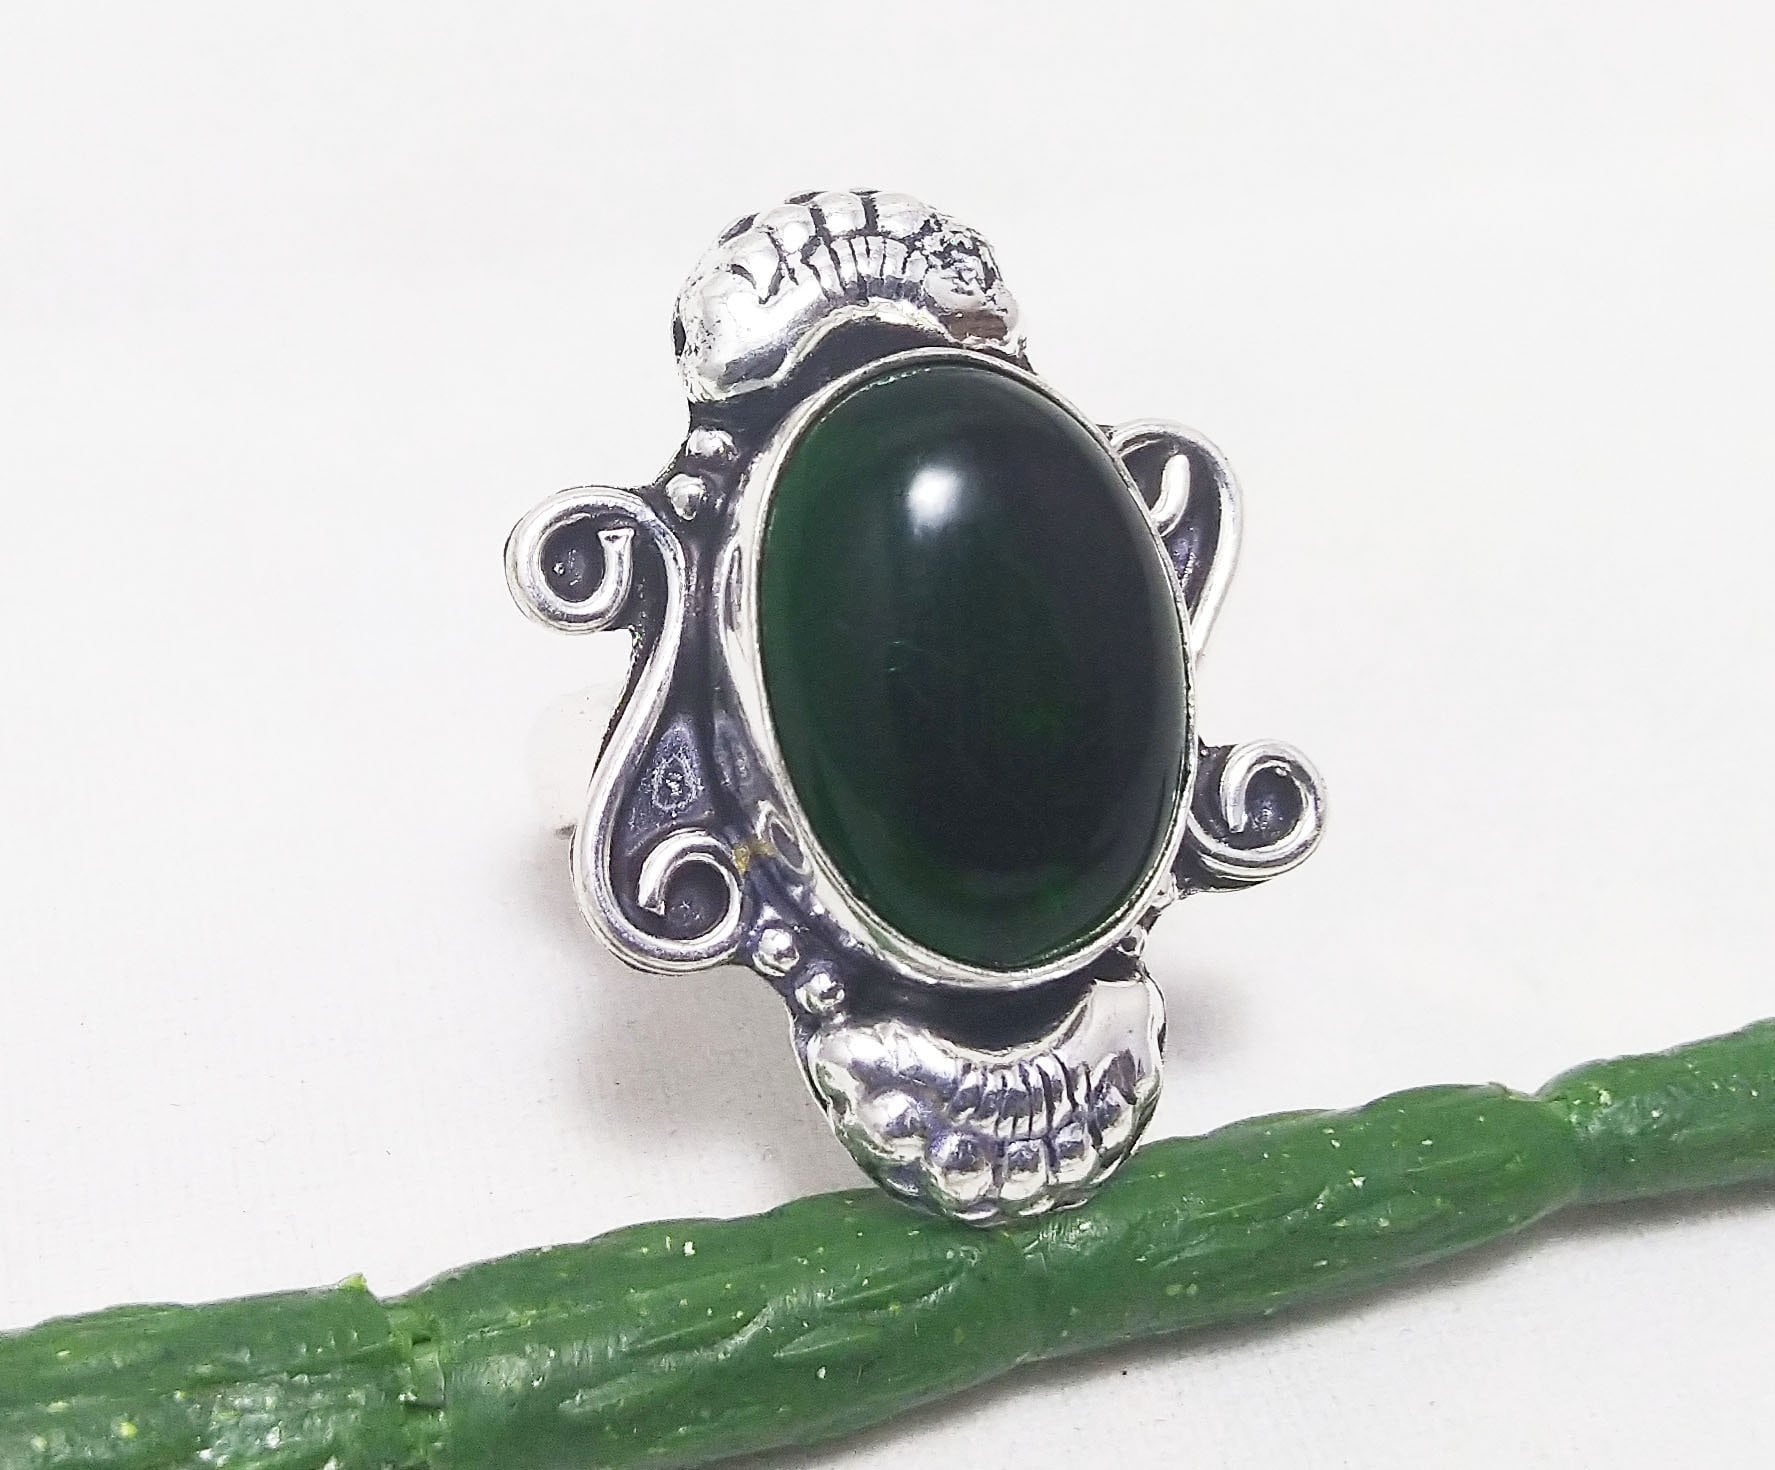 Green ite Sterling Silver Overlay Ring Size 8 US Handmade Jewelry Gift Jewelry